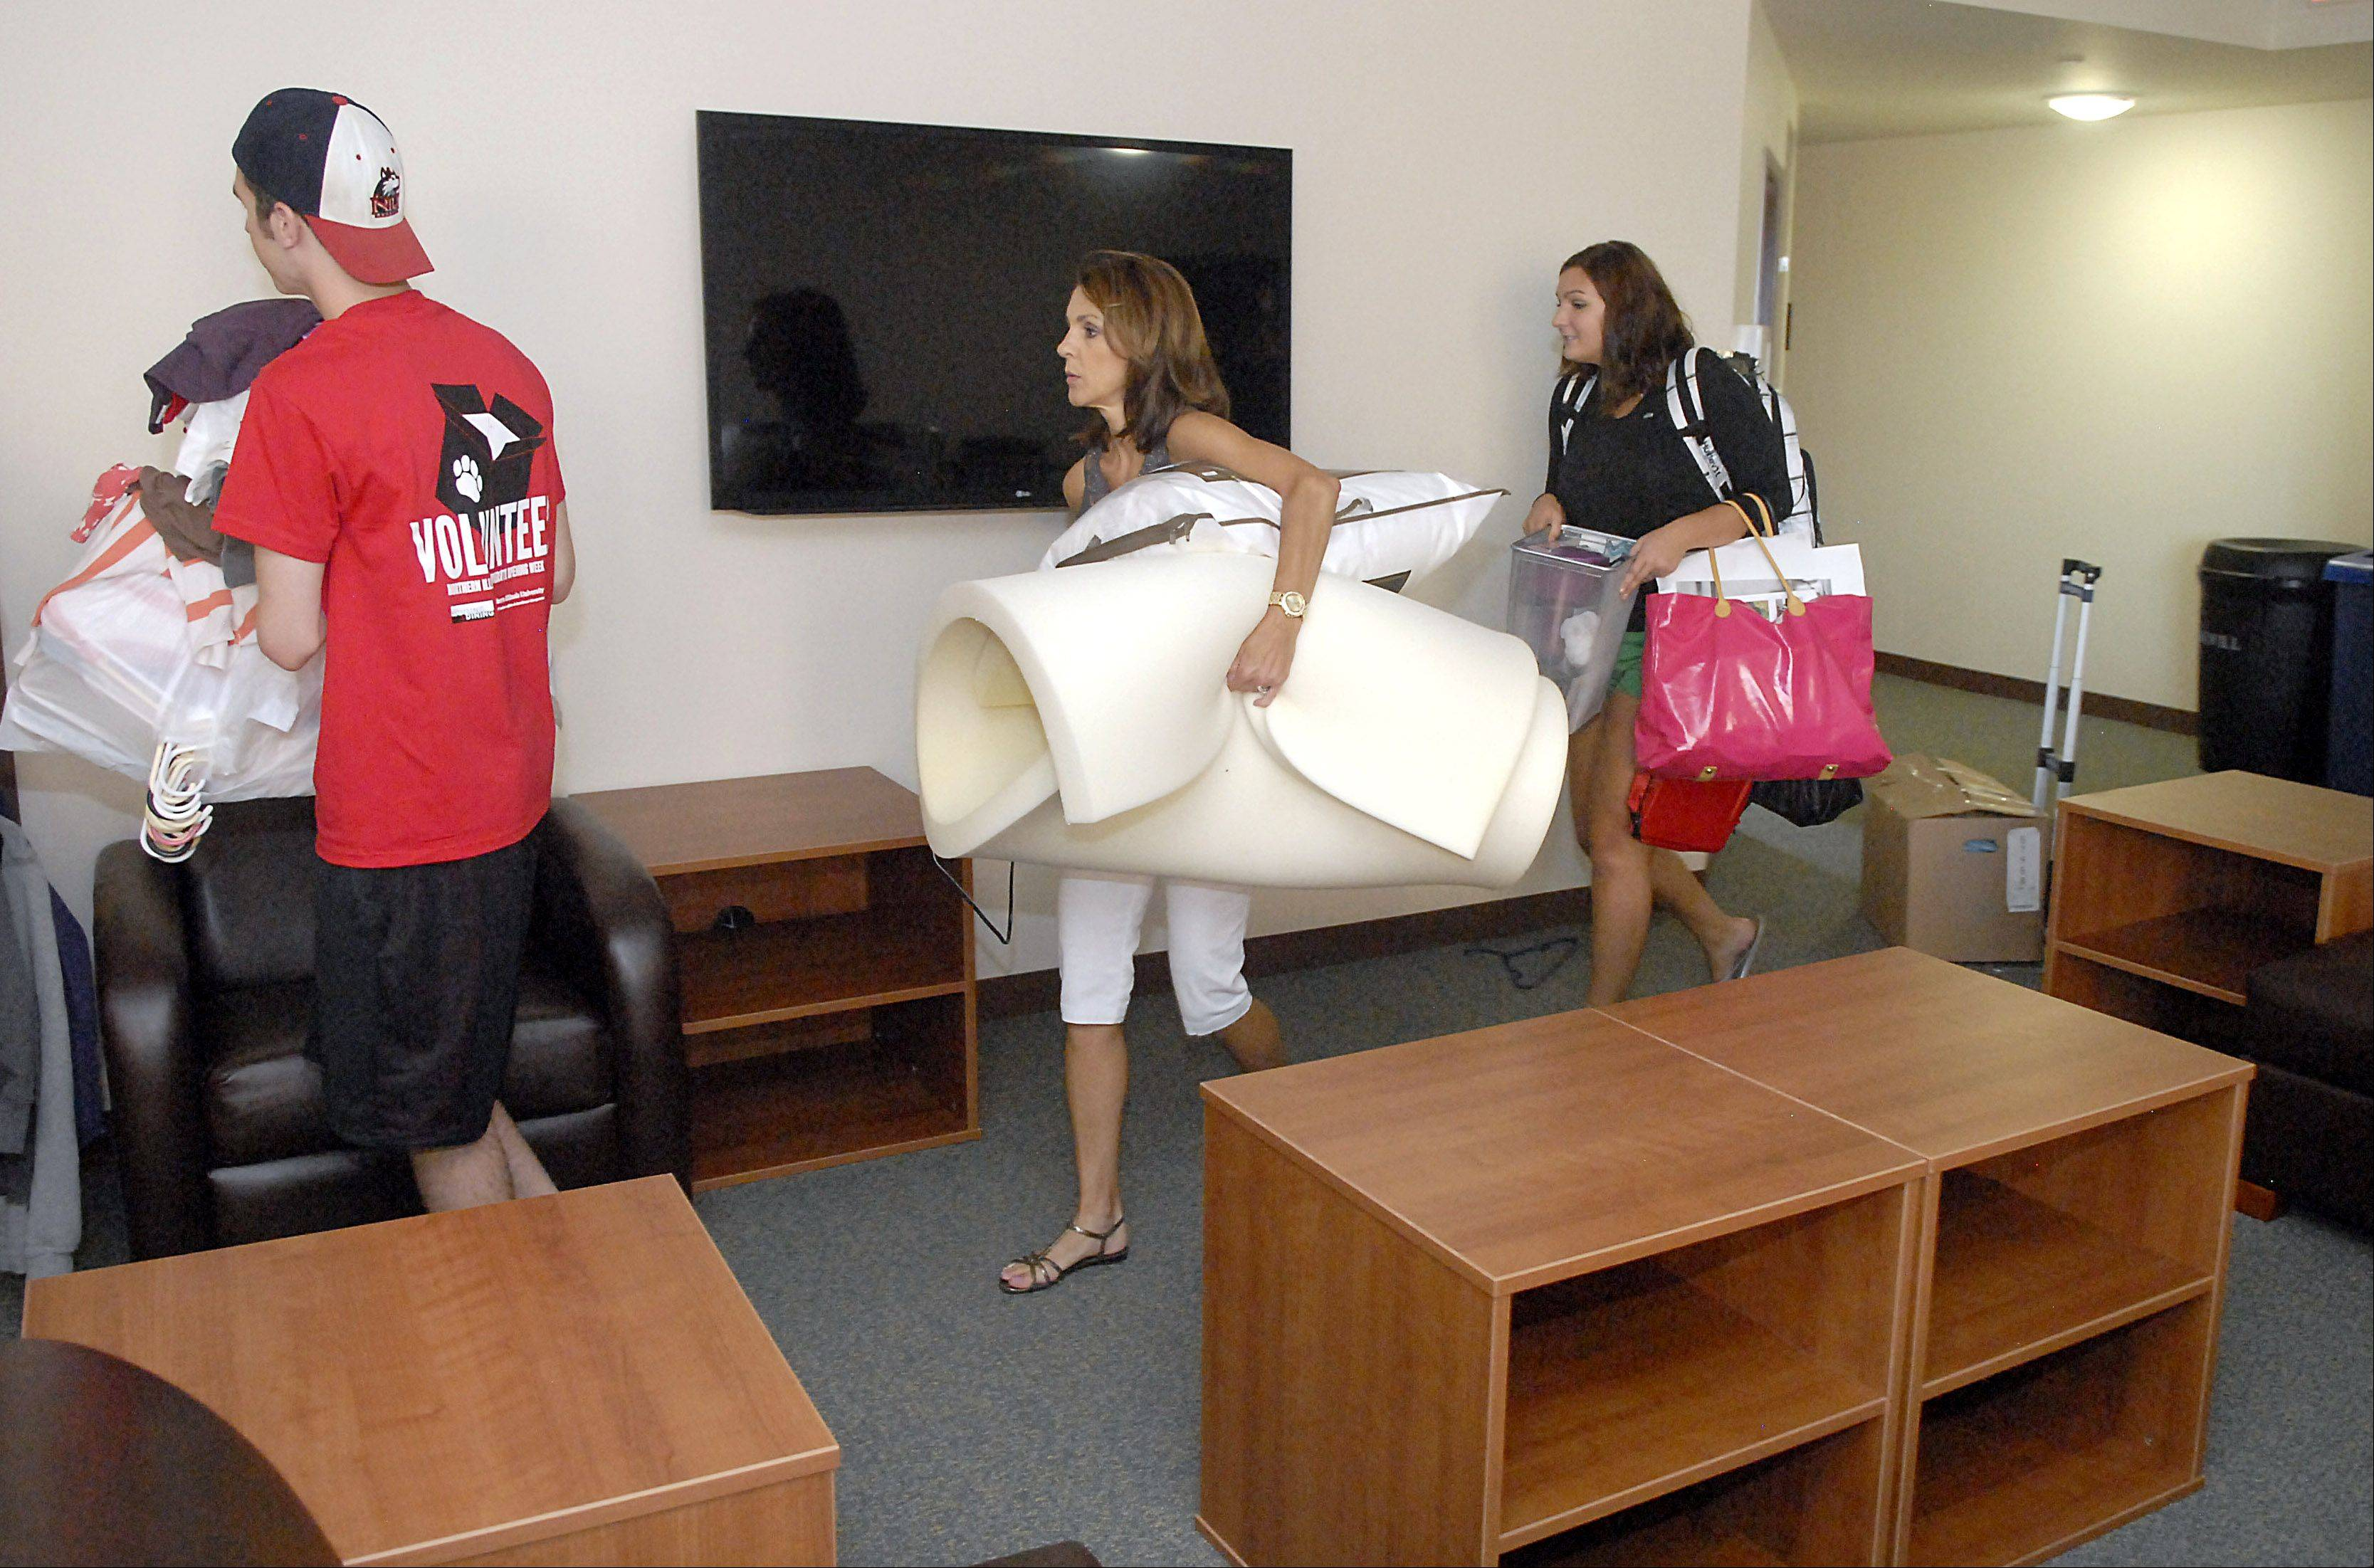 Maureen Radecki of Geneva and her daughter, Martha Christopher, lug her belongings through the joint common area in her dorm cluster in New Residence Hall East at Northern Illinois University in DeKalb on Thursday, August 23. The room has multiple couches and a large-screen TV and is connected to the kitchenette.